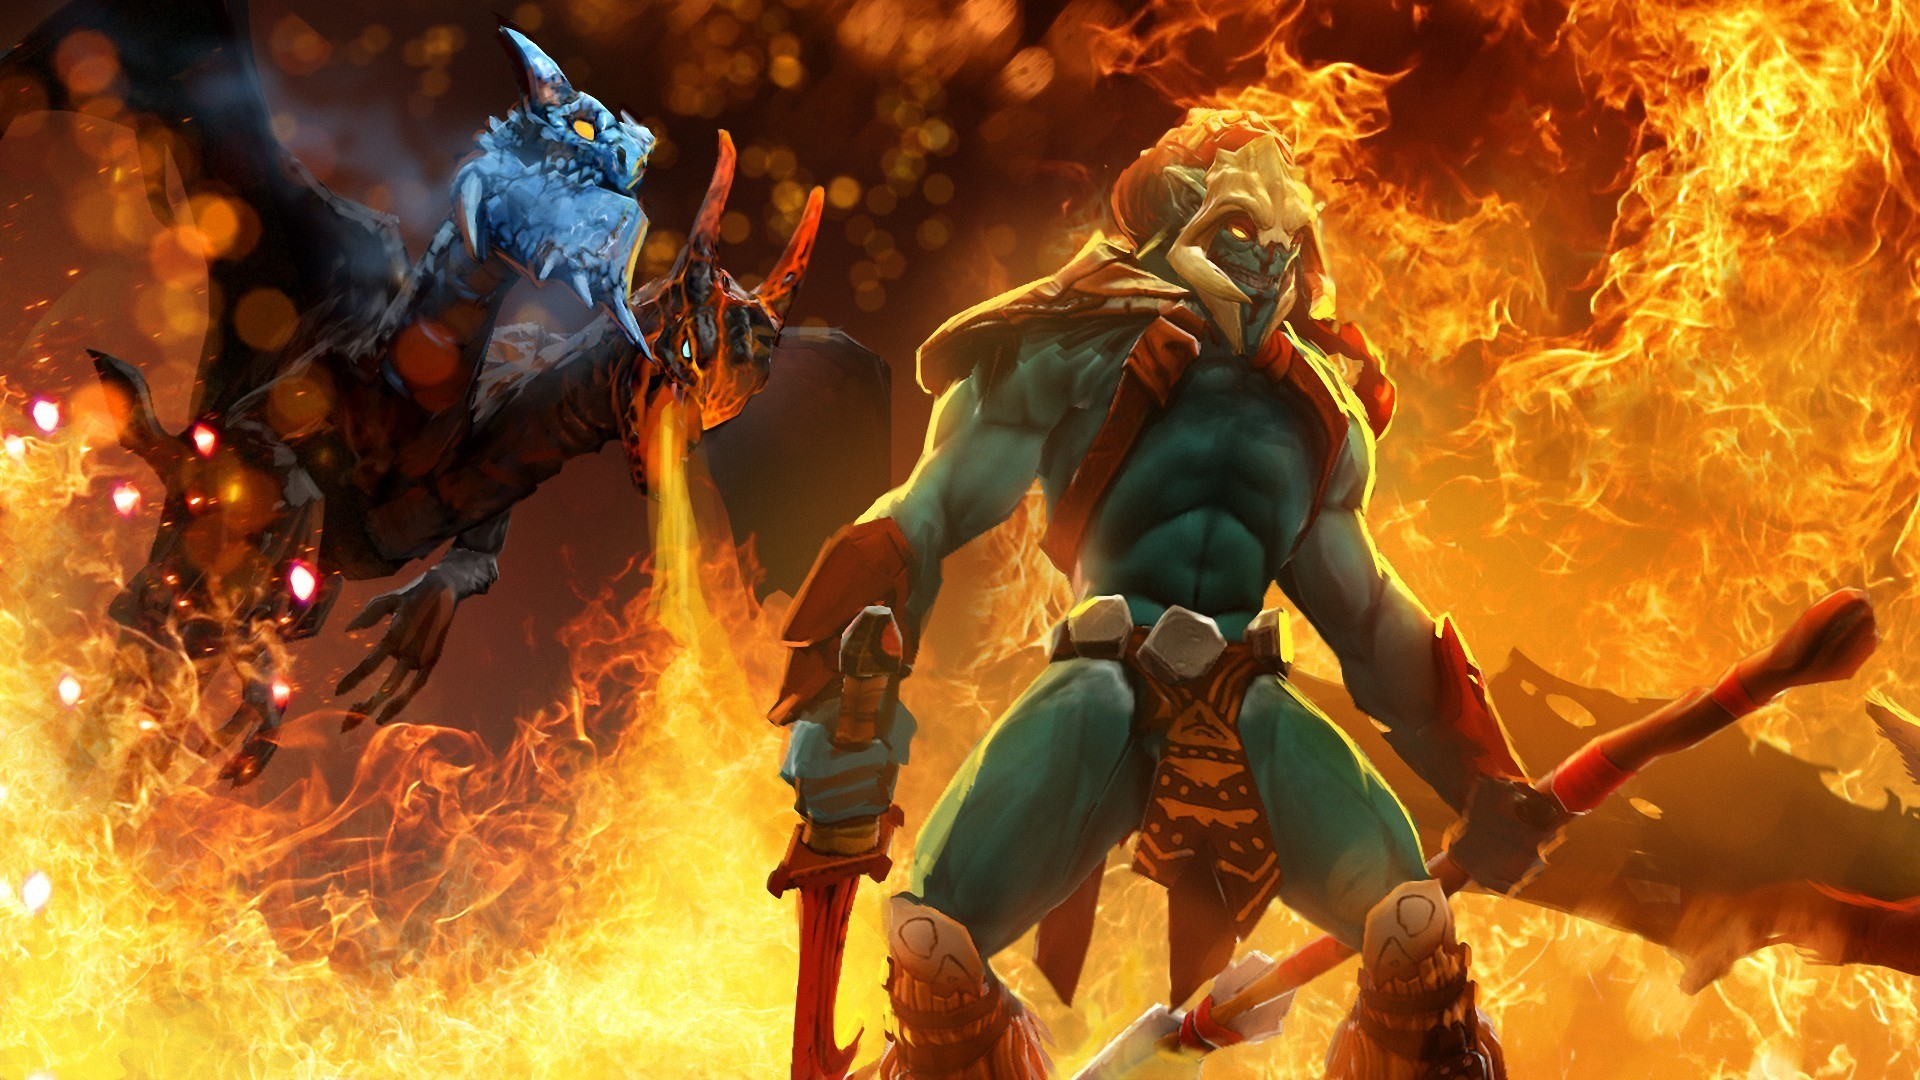 1920x1080 Wallpaper Dota 2 Middle Battle Map Heroes